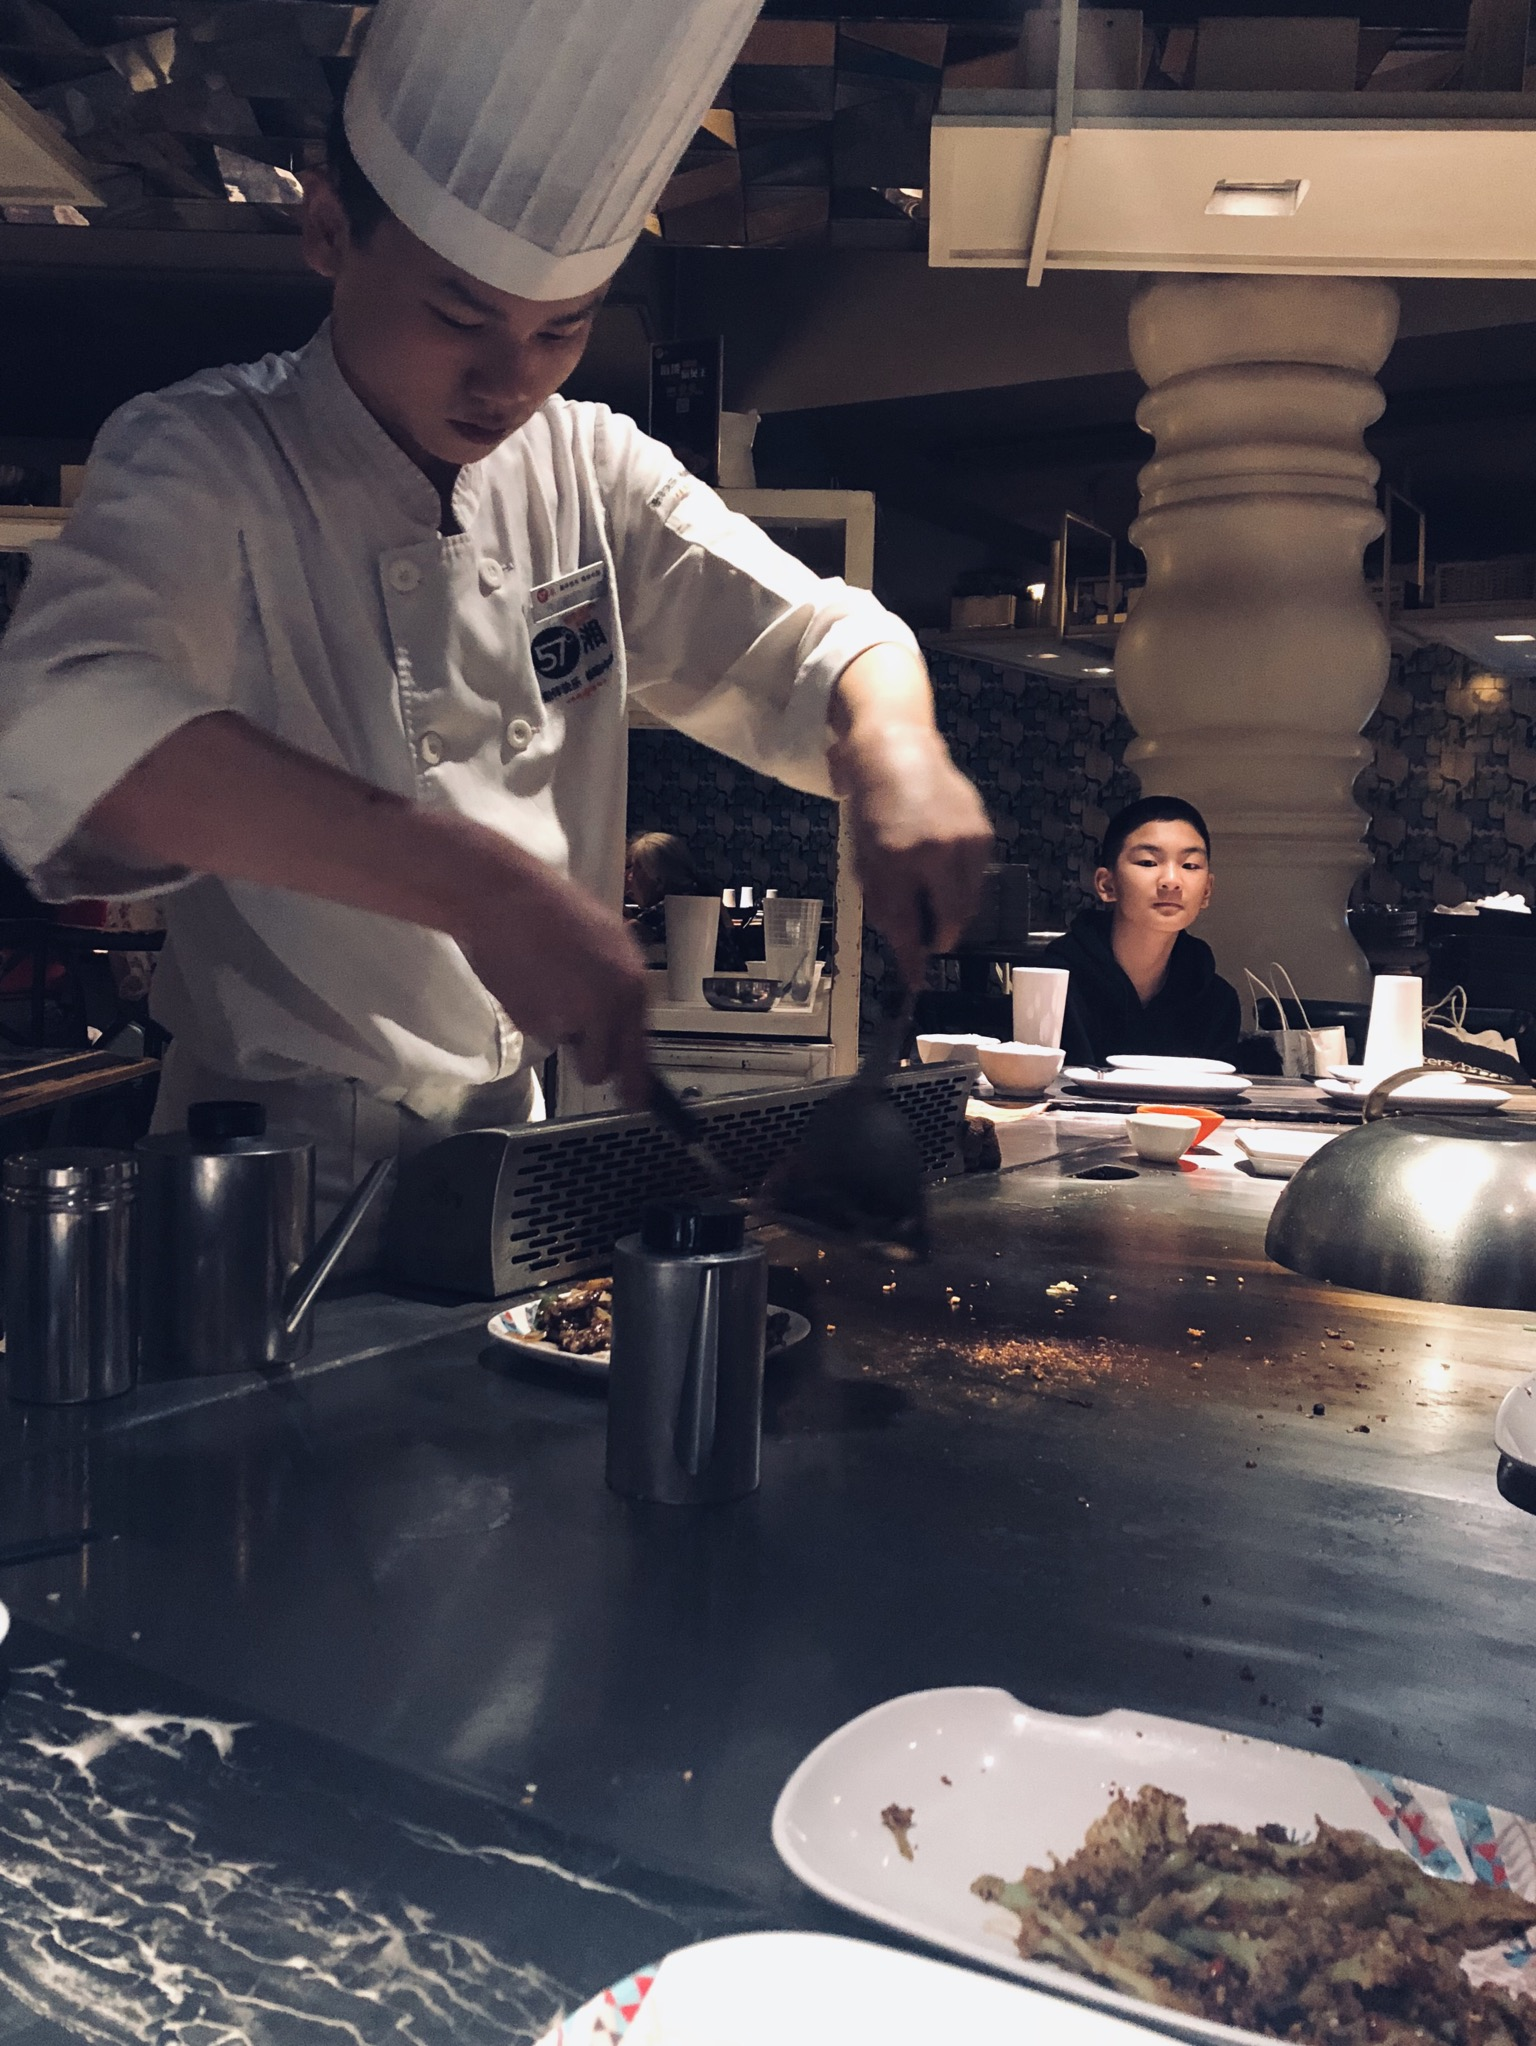 Dancing Chefs at 57°C Xiang Restaurant - Price range: 元元 Moderate but small portions. Location: 57 Xiang, No.195, Section 2, Furong Middle Road, Changsha.Experience something a little different and head over to 57°C Xiang restaurant. You'll sit around an iron plate grill and watch each stage of the cooking process. Be sure to head over around 18:30-19: 00 pm for a chef special dance show!